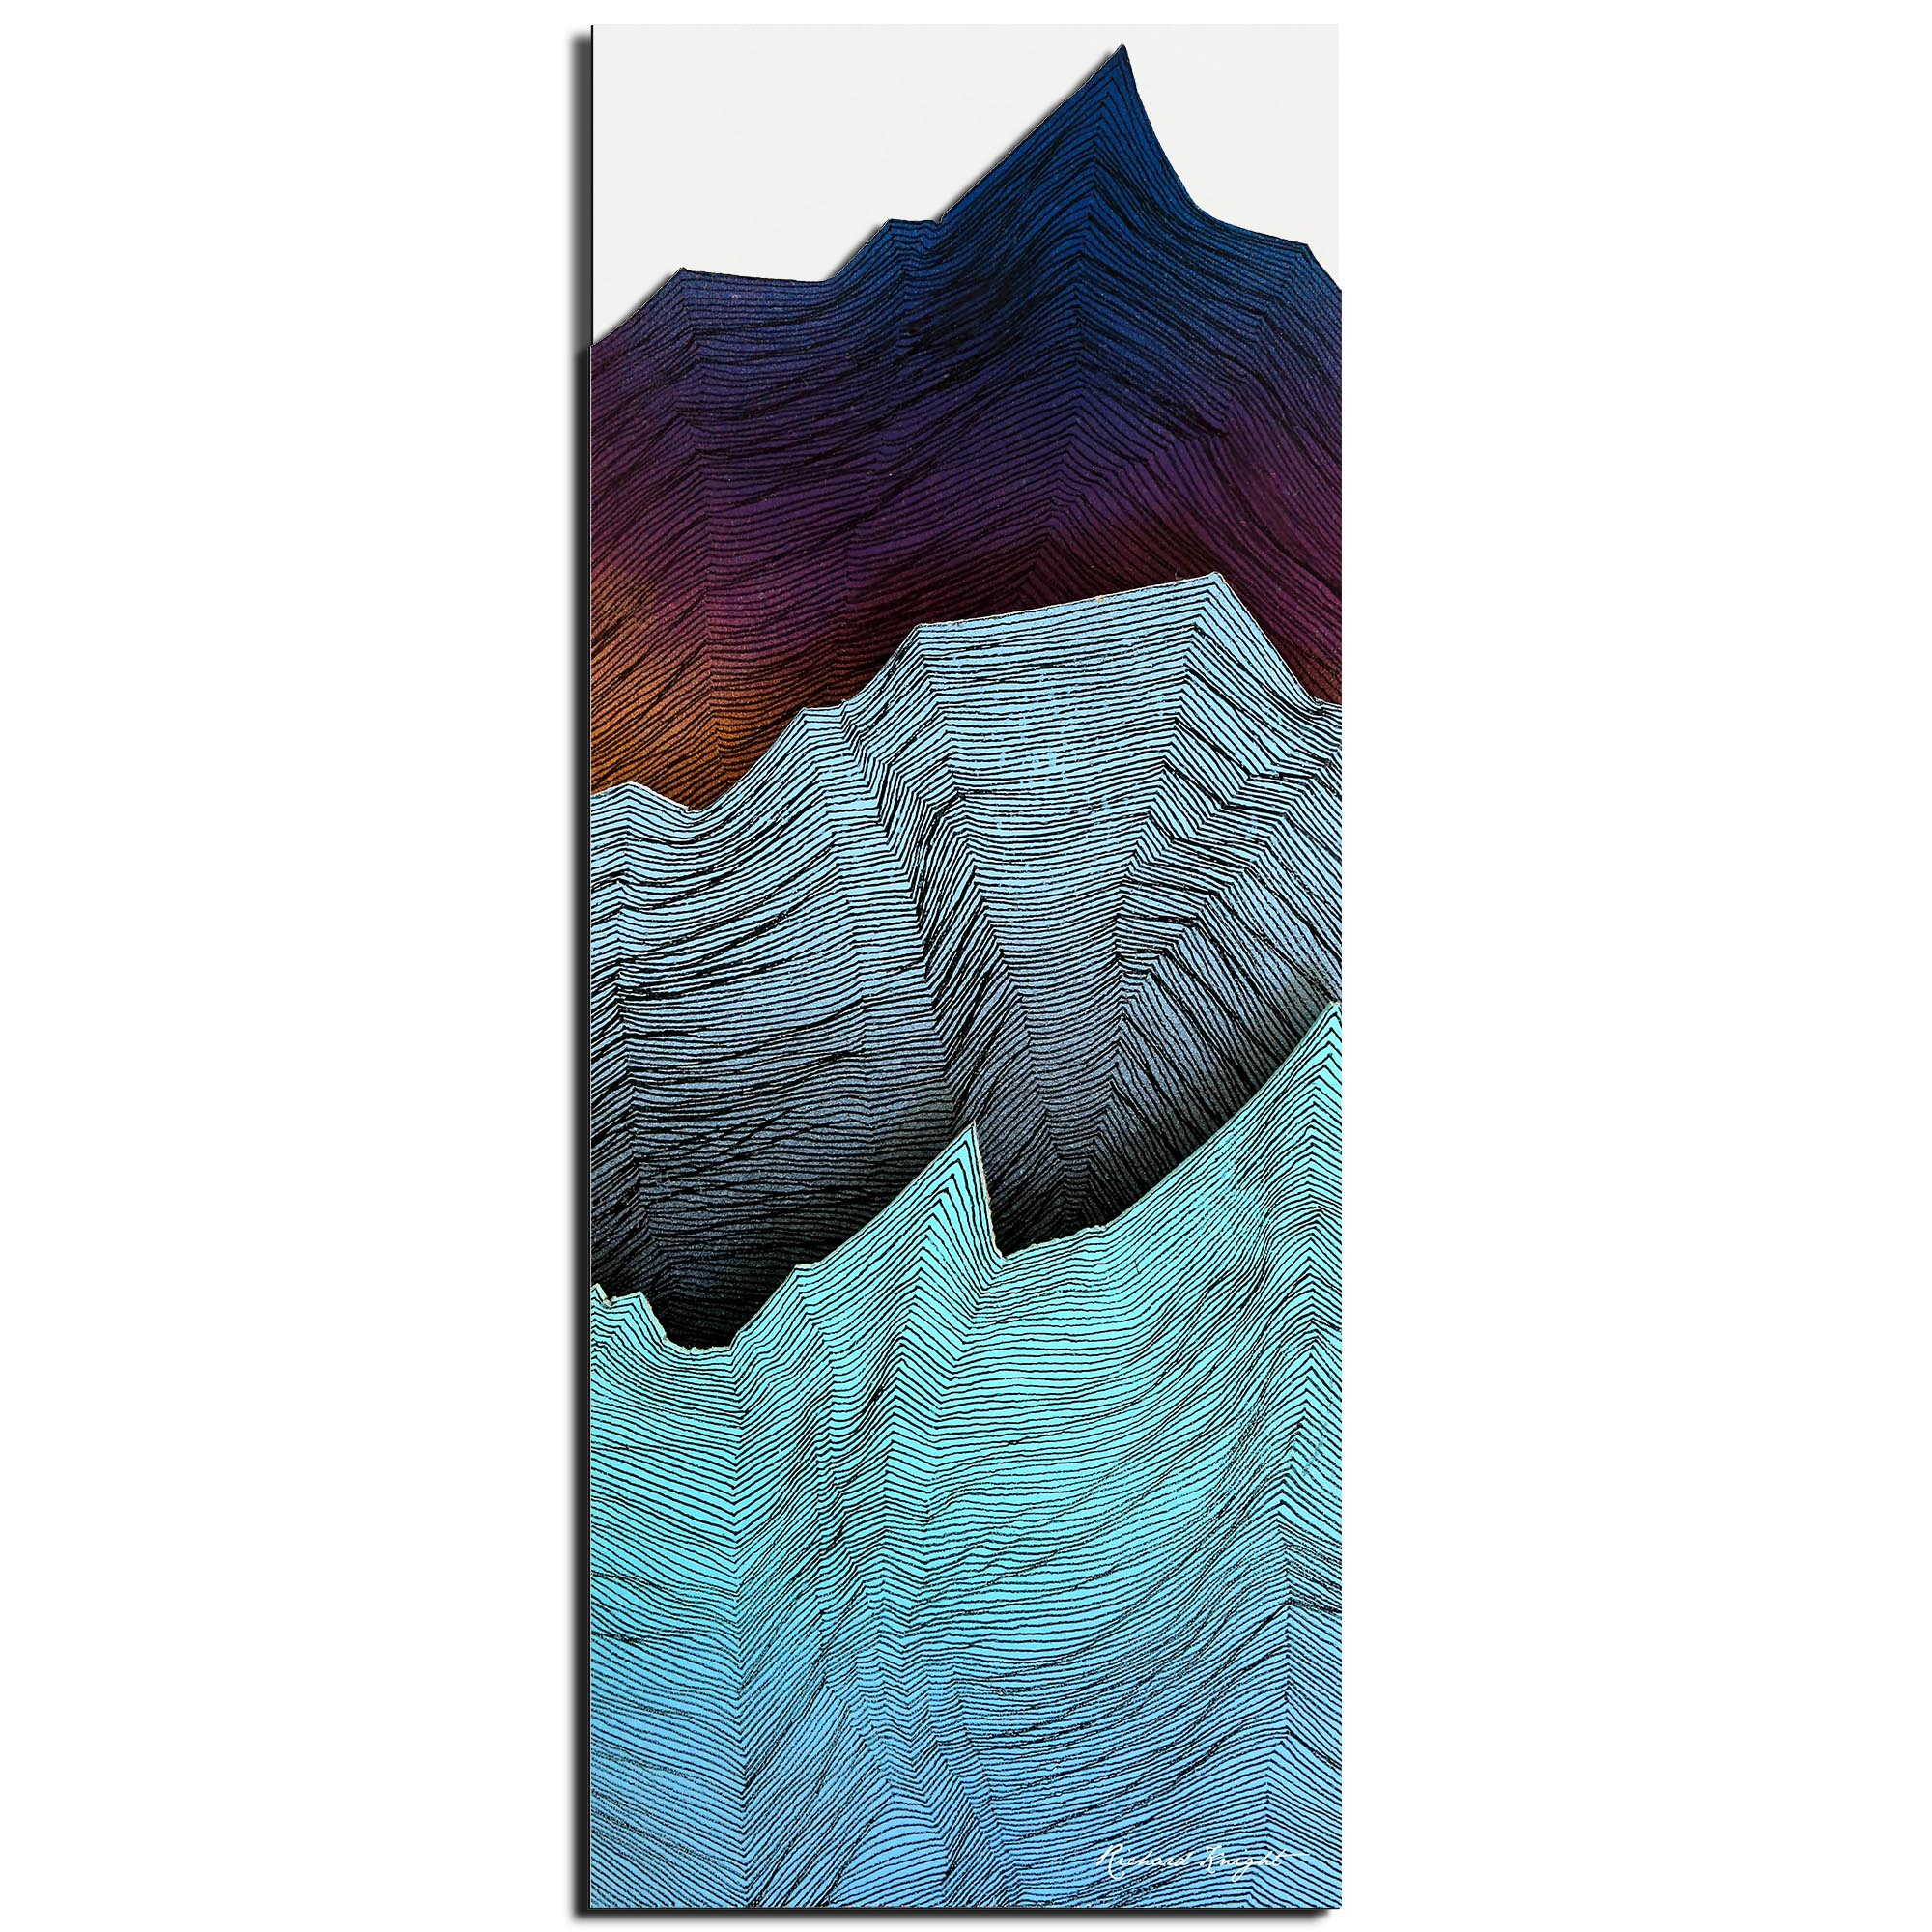 Richard Knight 'Cool Peaks' 19in x 48in Abstract Landscape Art on Polymetal